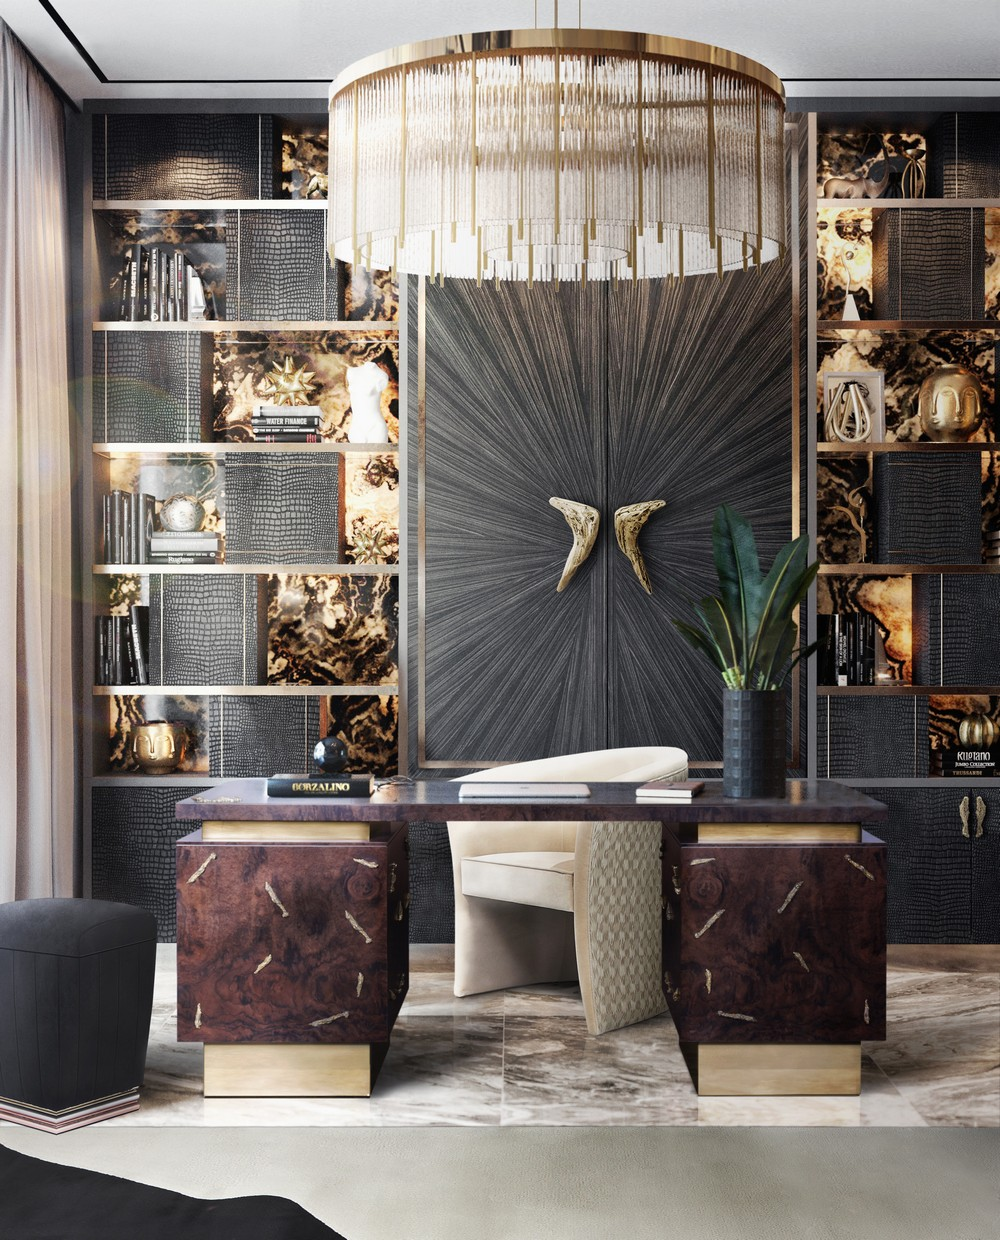 Interior Design Trends that Will Never Go Out of Style_6 interior design trends Interior Design Trends that Will Never Go Out of Style Interior Design Trends that Will Never Go Out of Style 6